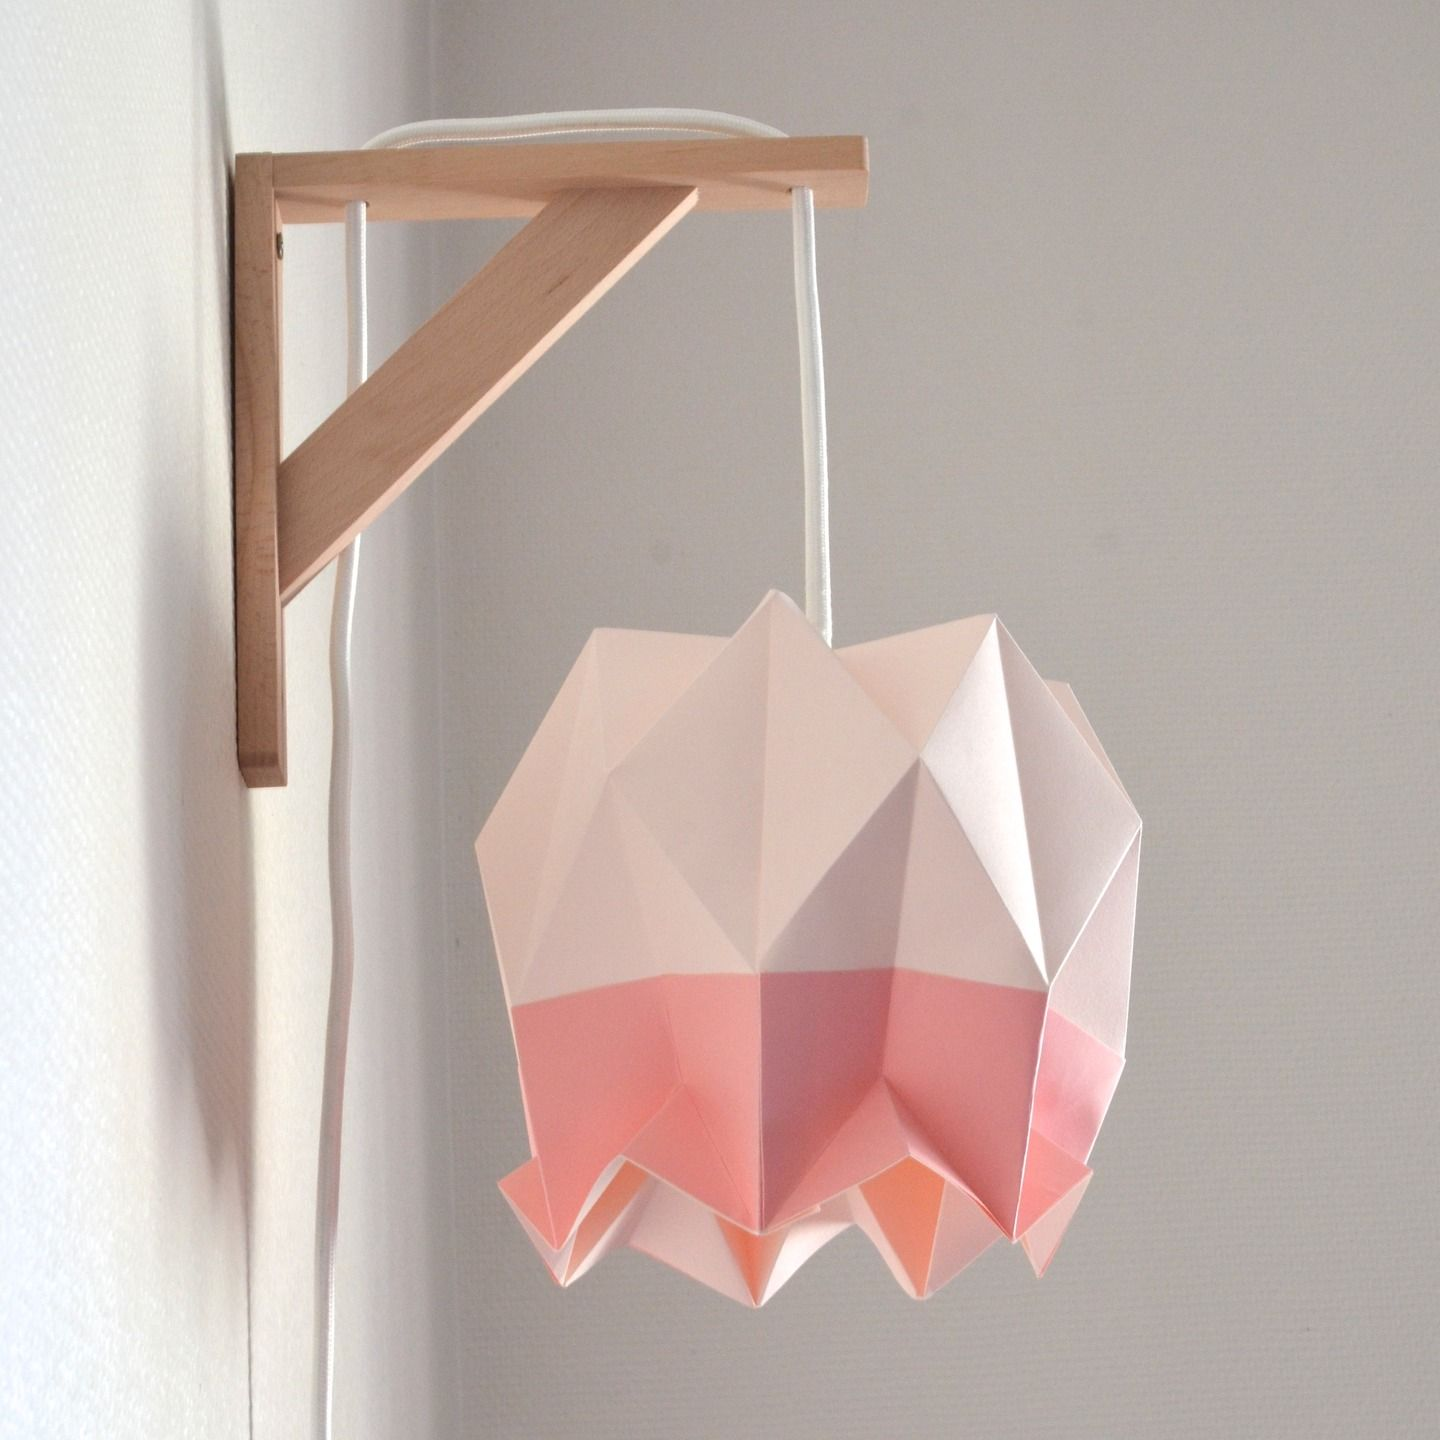 Applique Suspension Lotus d inspiration scandinave